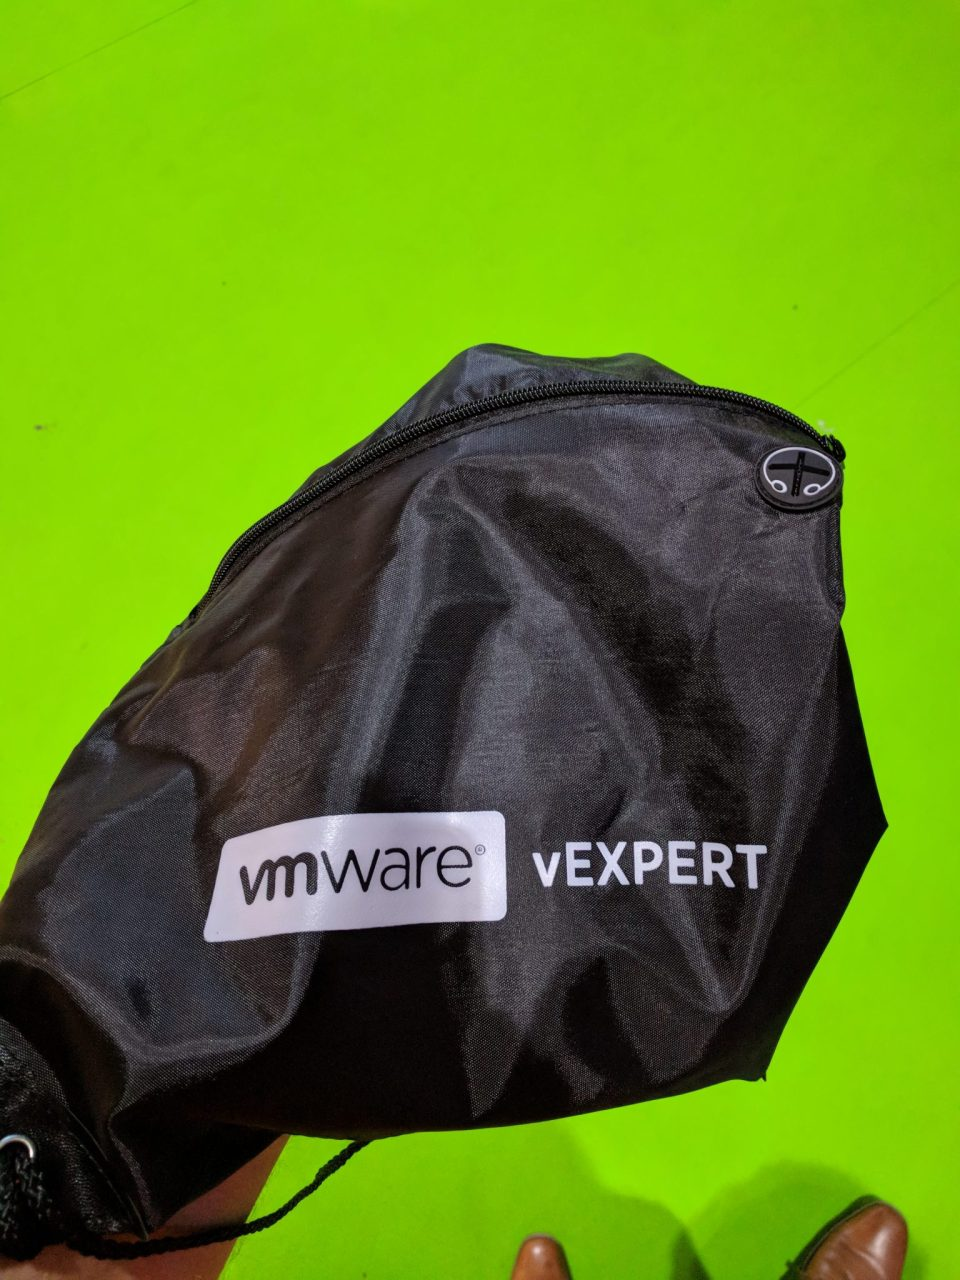 VMware 2018 EU - vExpert Bag